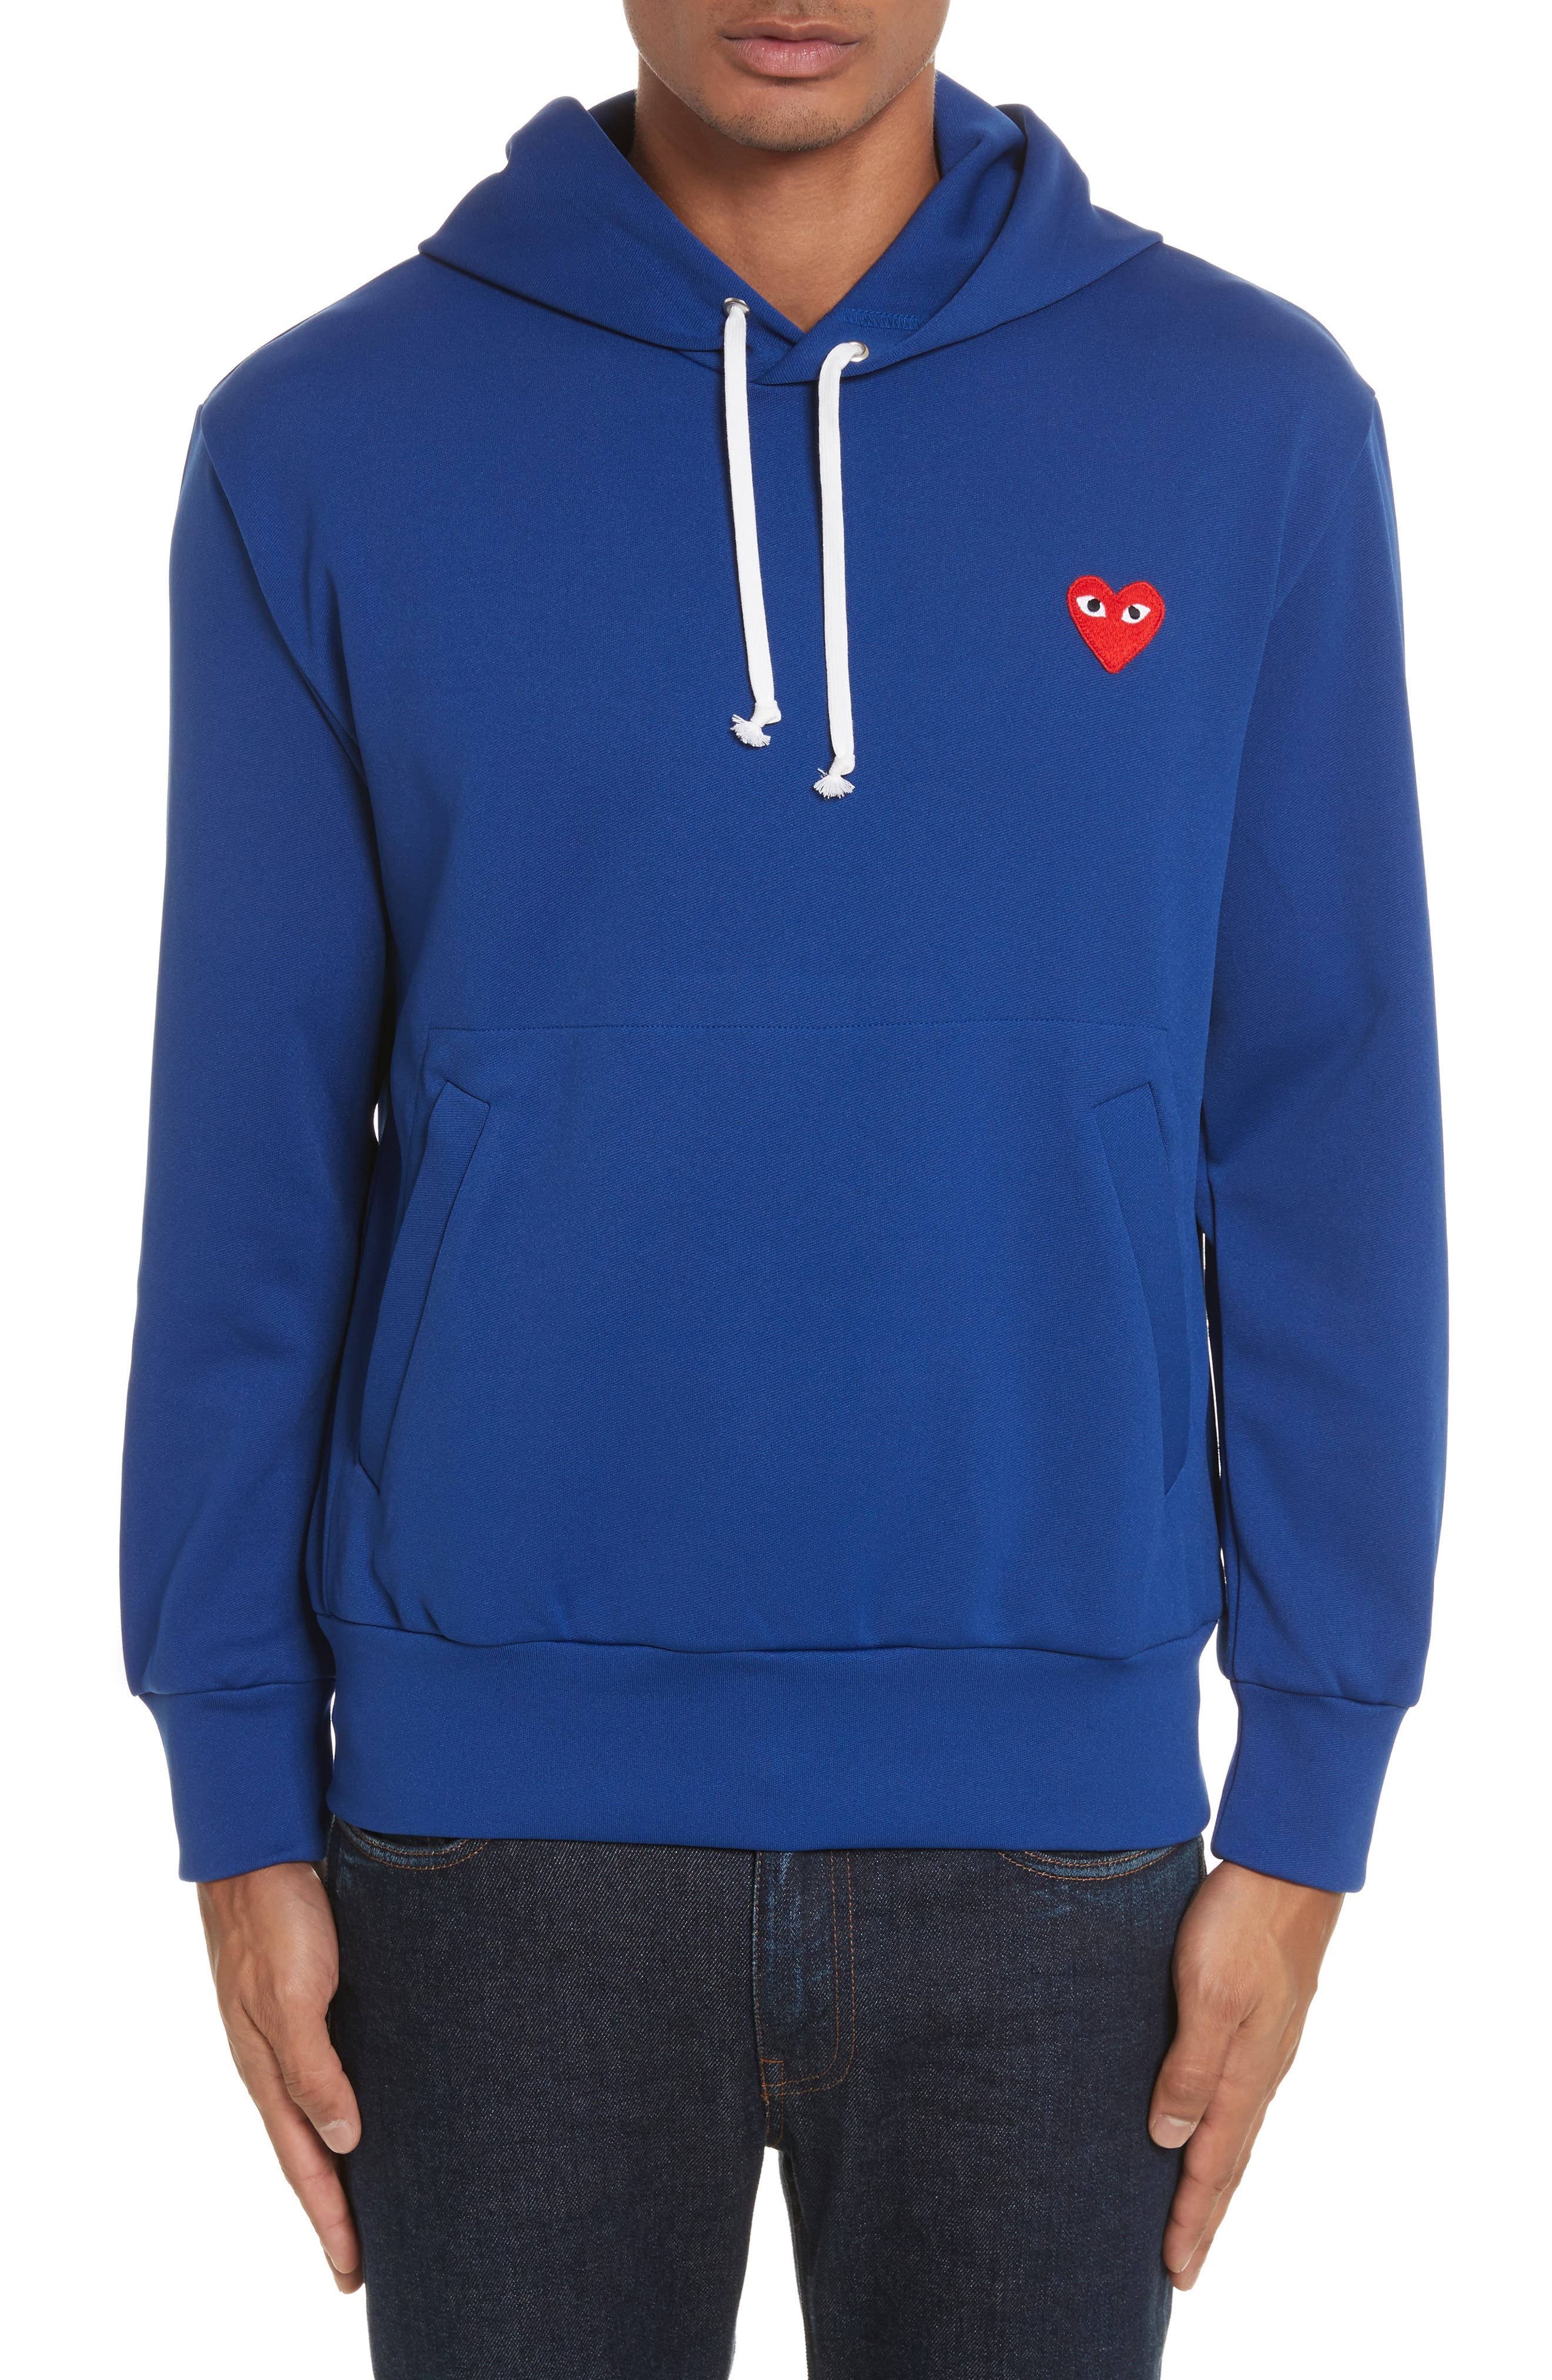 Pullover Hoodie,                             Main thumbnail 1, color,                             410